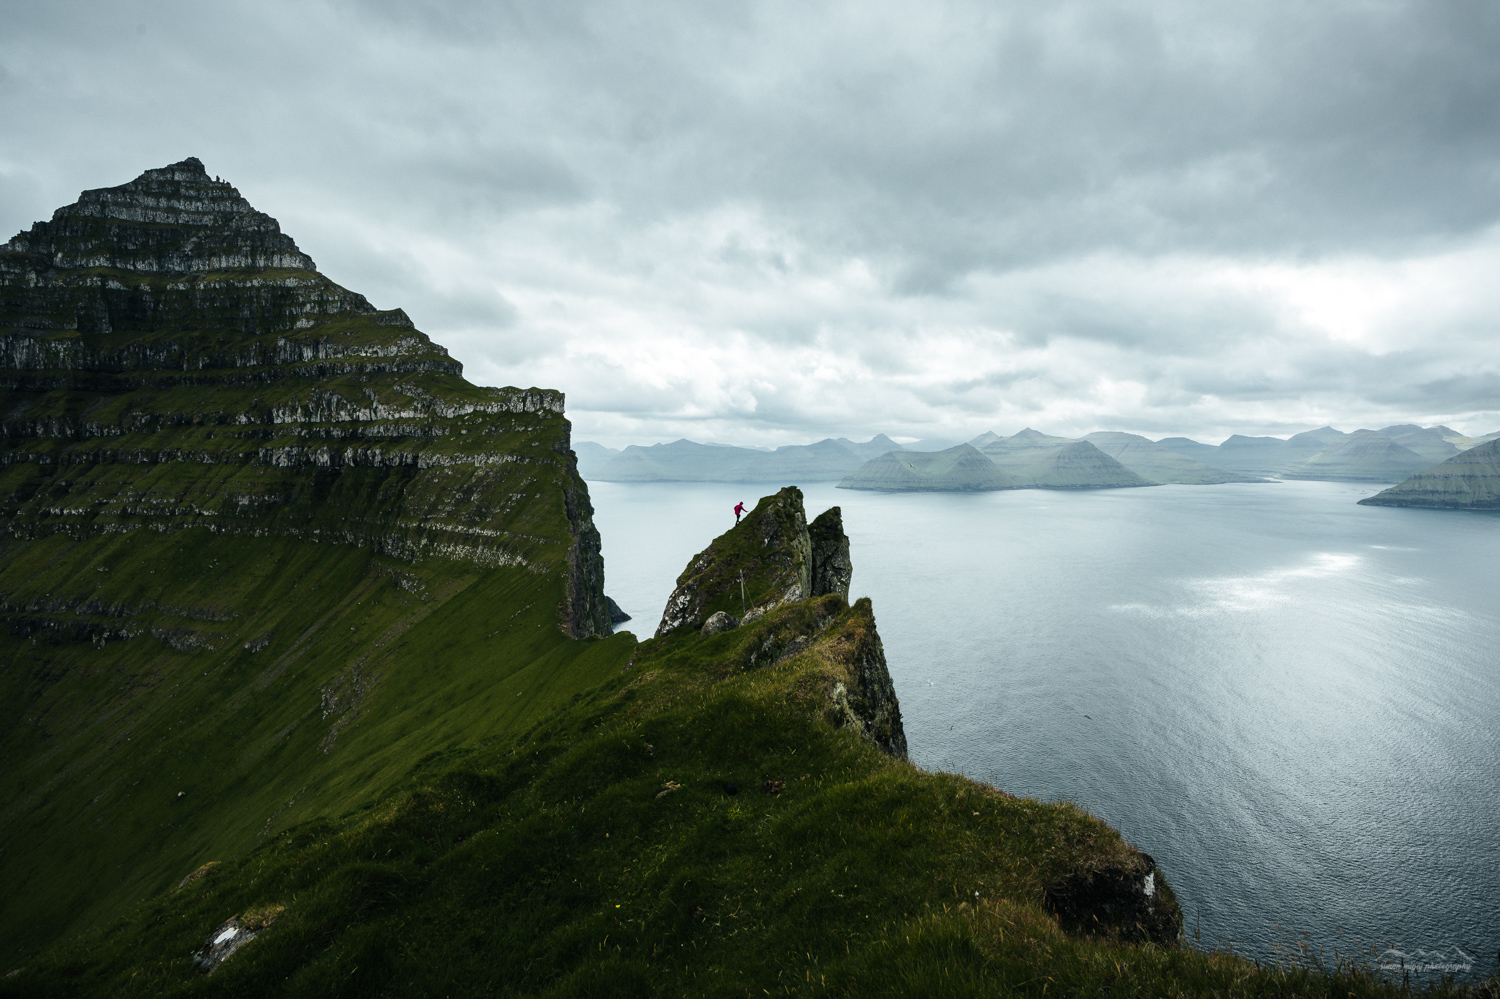 Man climbing the cliffs of Kalsoy, Faroe Islands